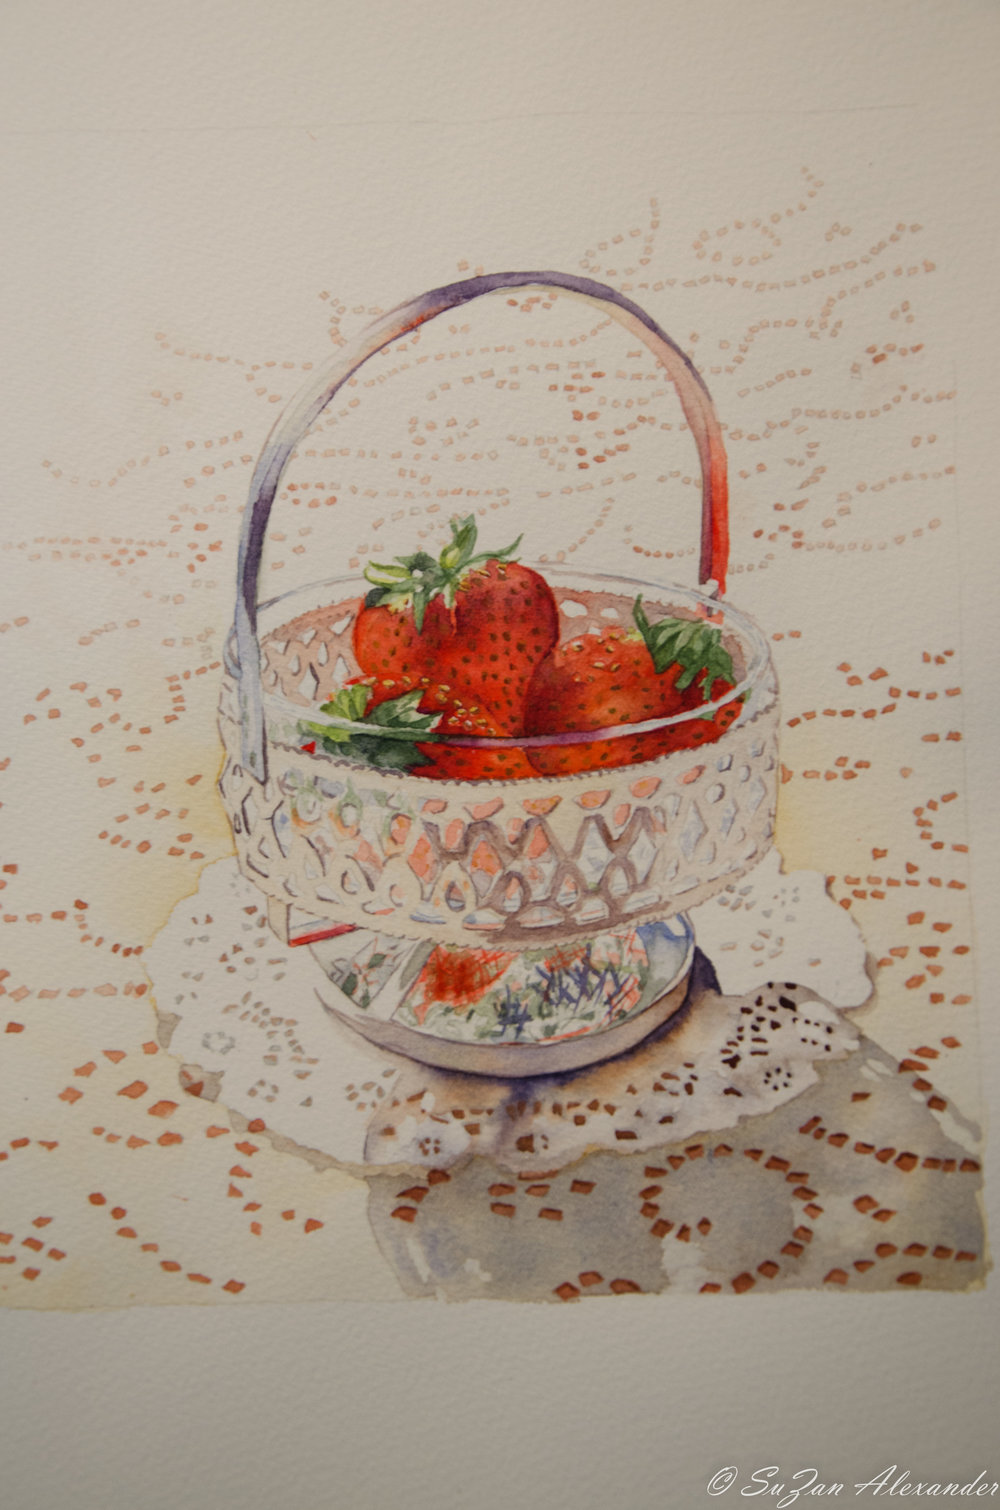 Watercolor Project 8: Strawberries and Lace